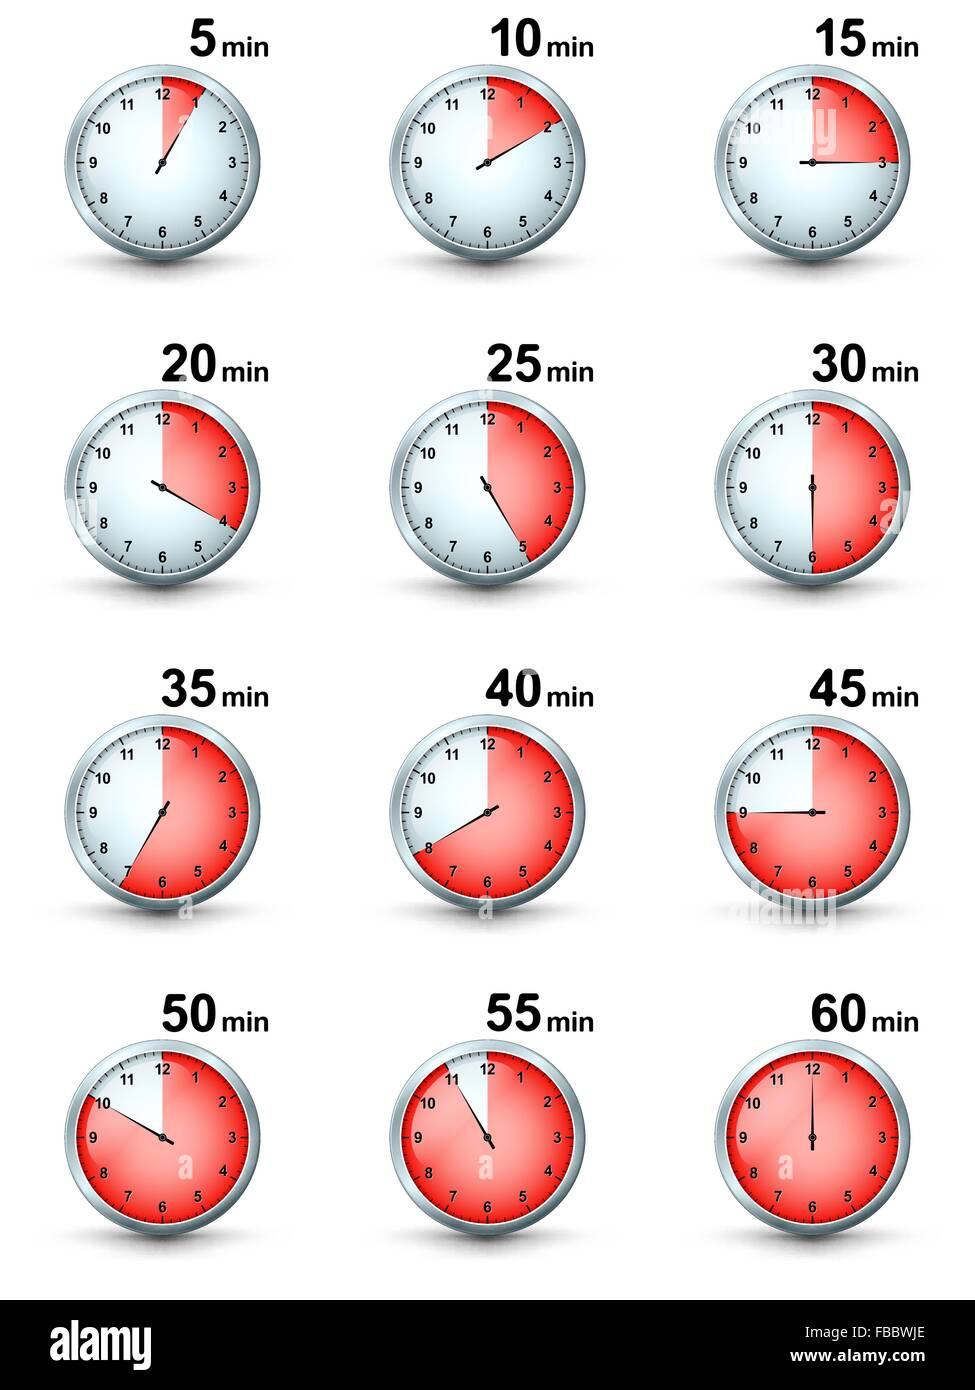 5 To 30 Minute Timer